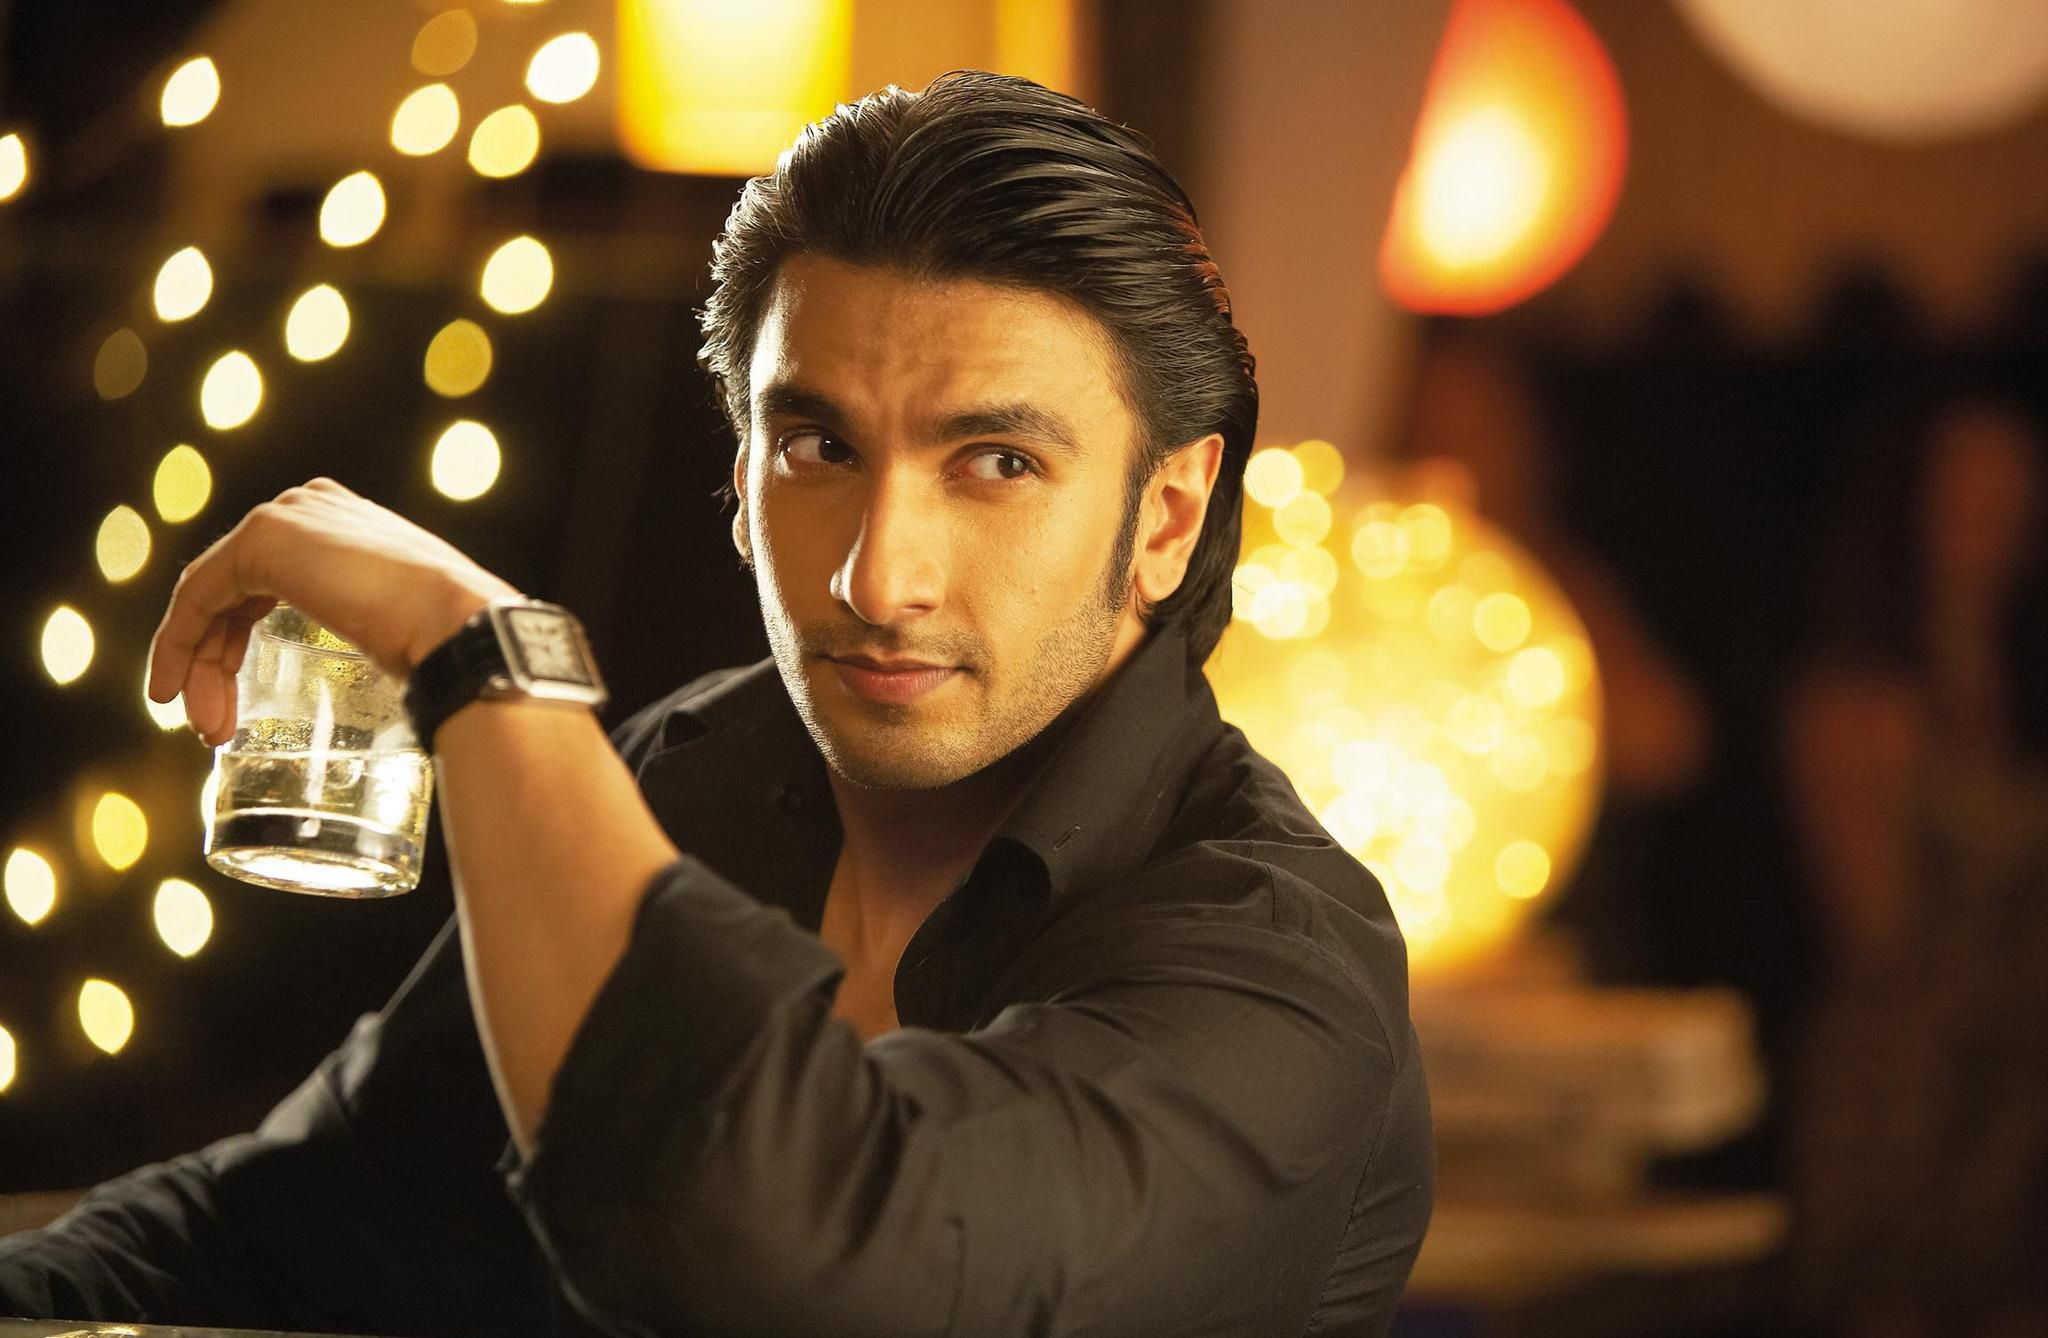 Pin by Richie on Hairstyles for men | Ladies vs ricky bahl ...